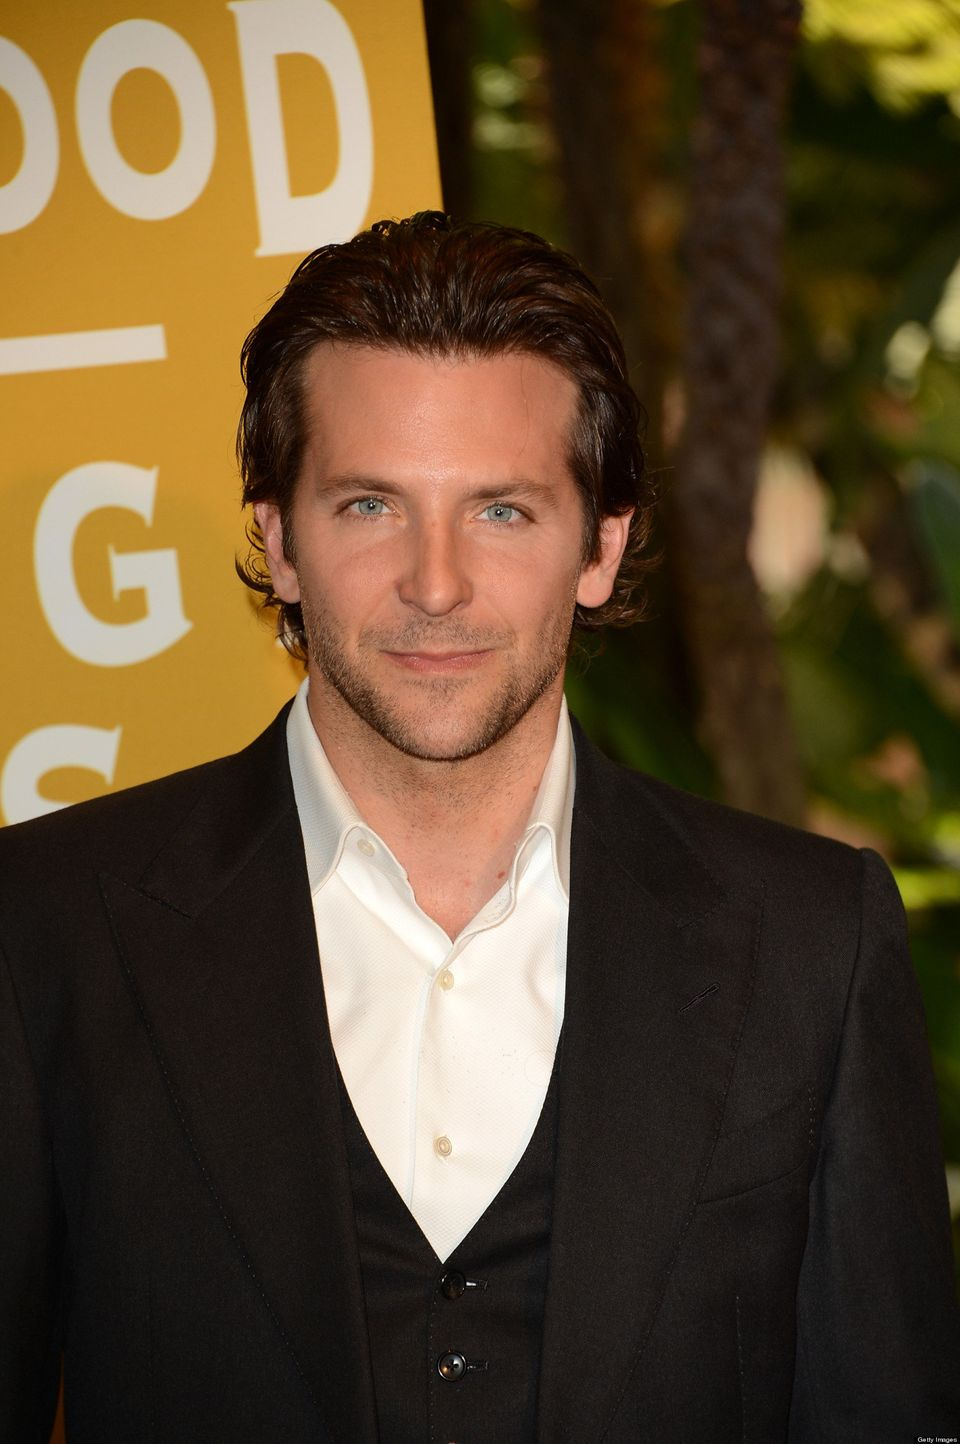 """We know what you're thinking: Bradley Cooper is divorced? Yep, the blue-eyed babe from """"The Hangover"""" was briefly <a href=""""ht"""